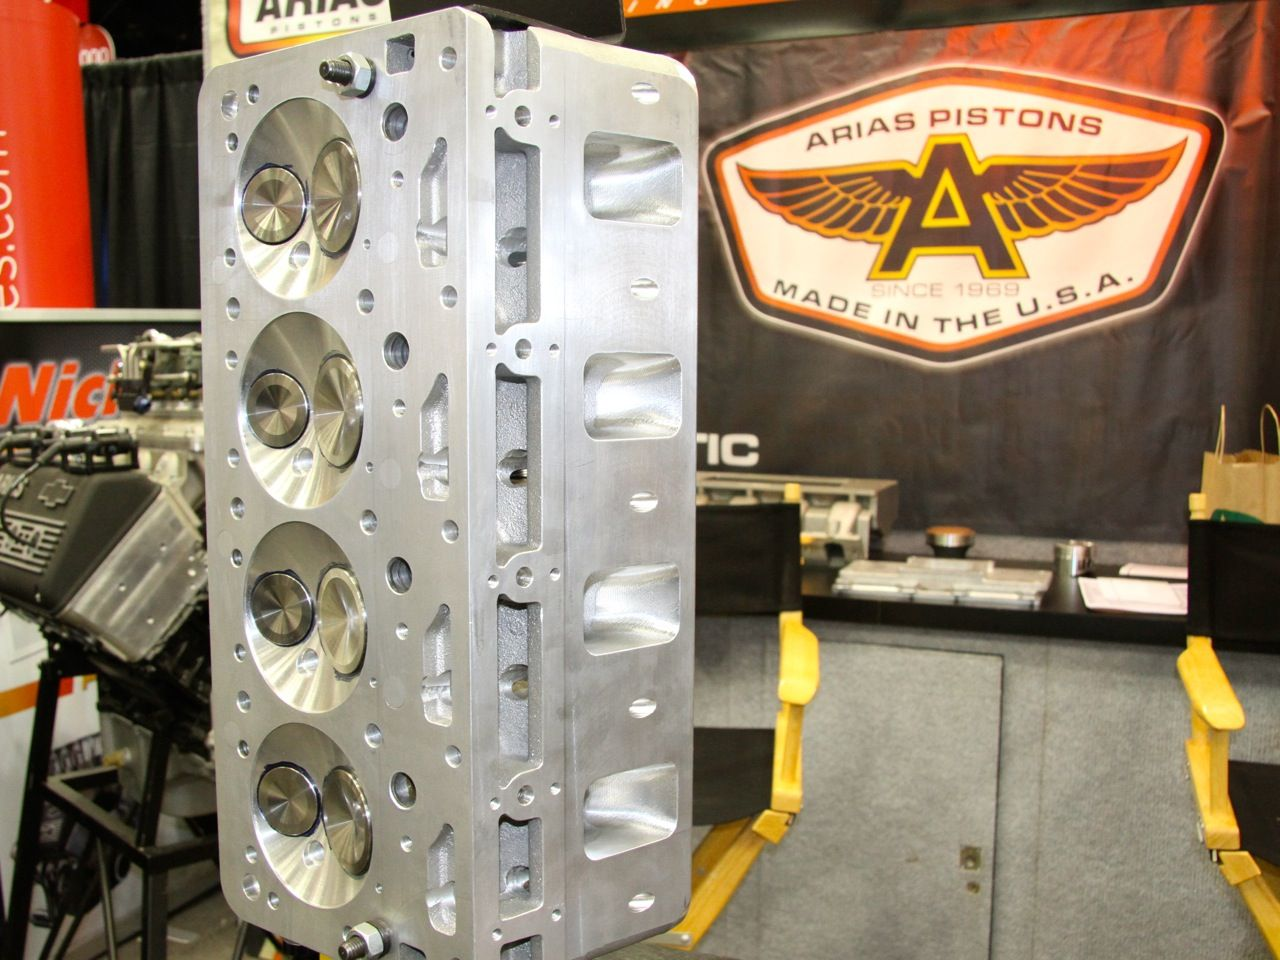 The Arias hemi designs for LS and 351W engines are starting